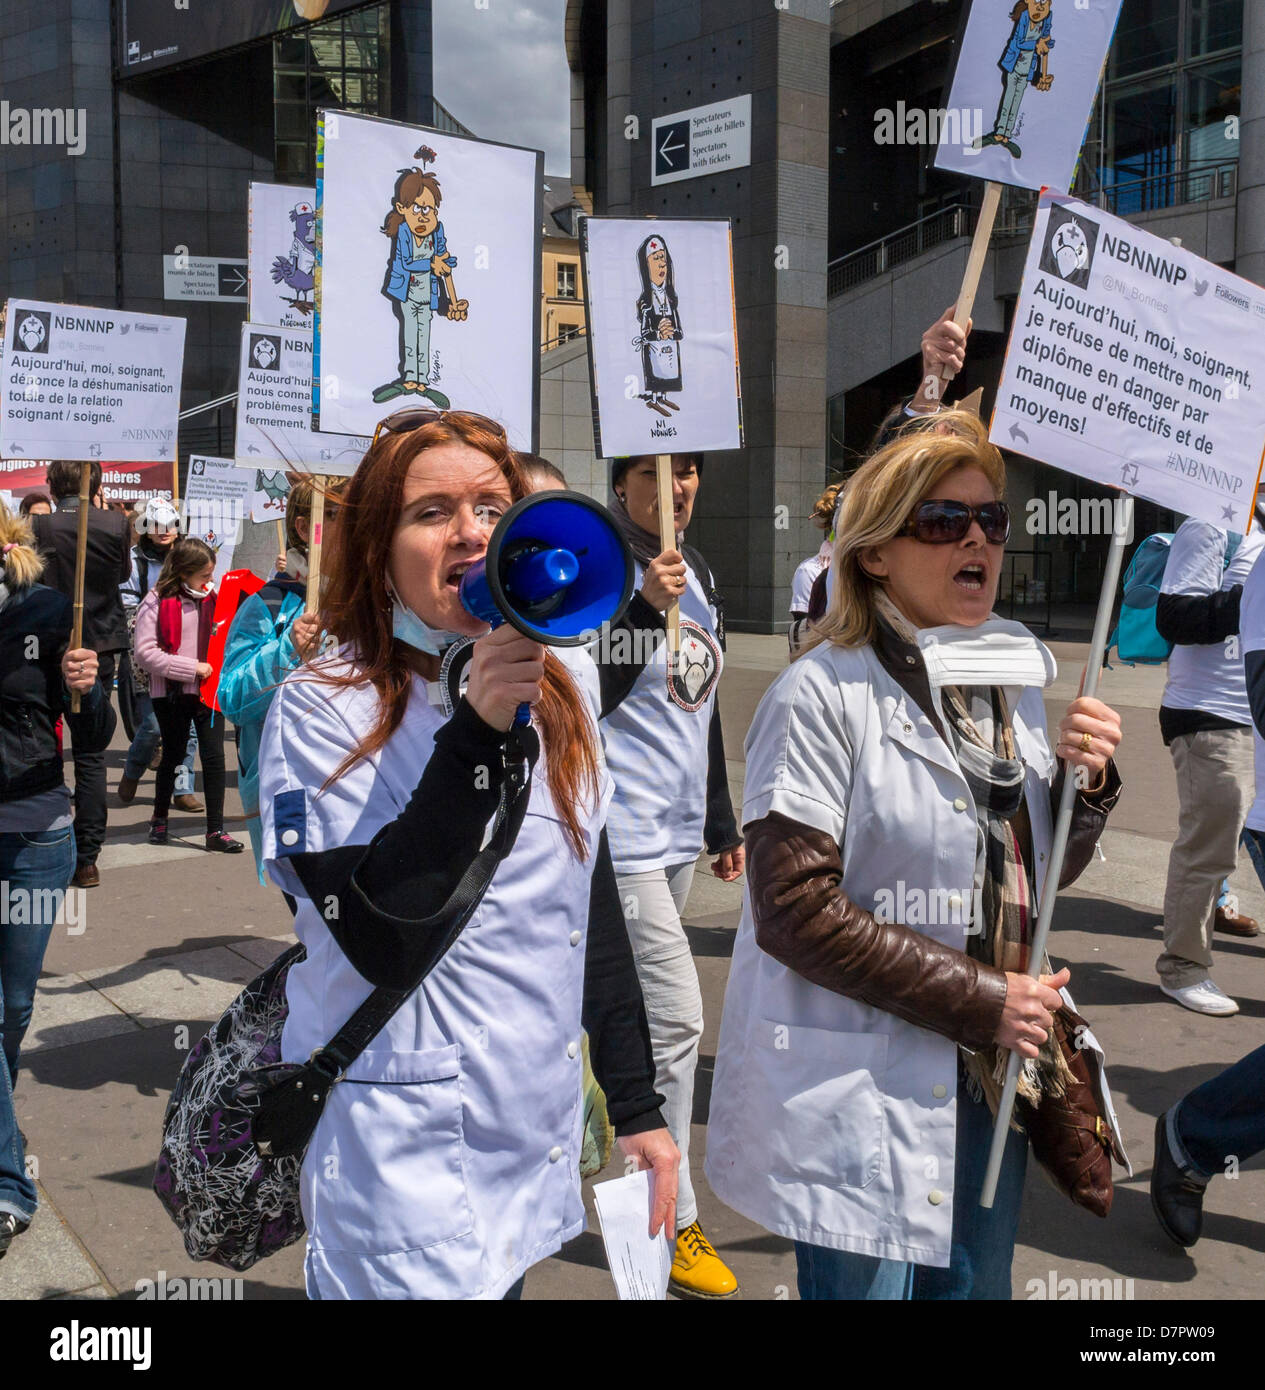 Paris, France. French Nurses Demonstration, For Support of Government Funding for Public Health Care, Woman Nurse - Stock Image